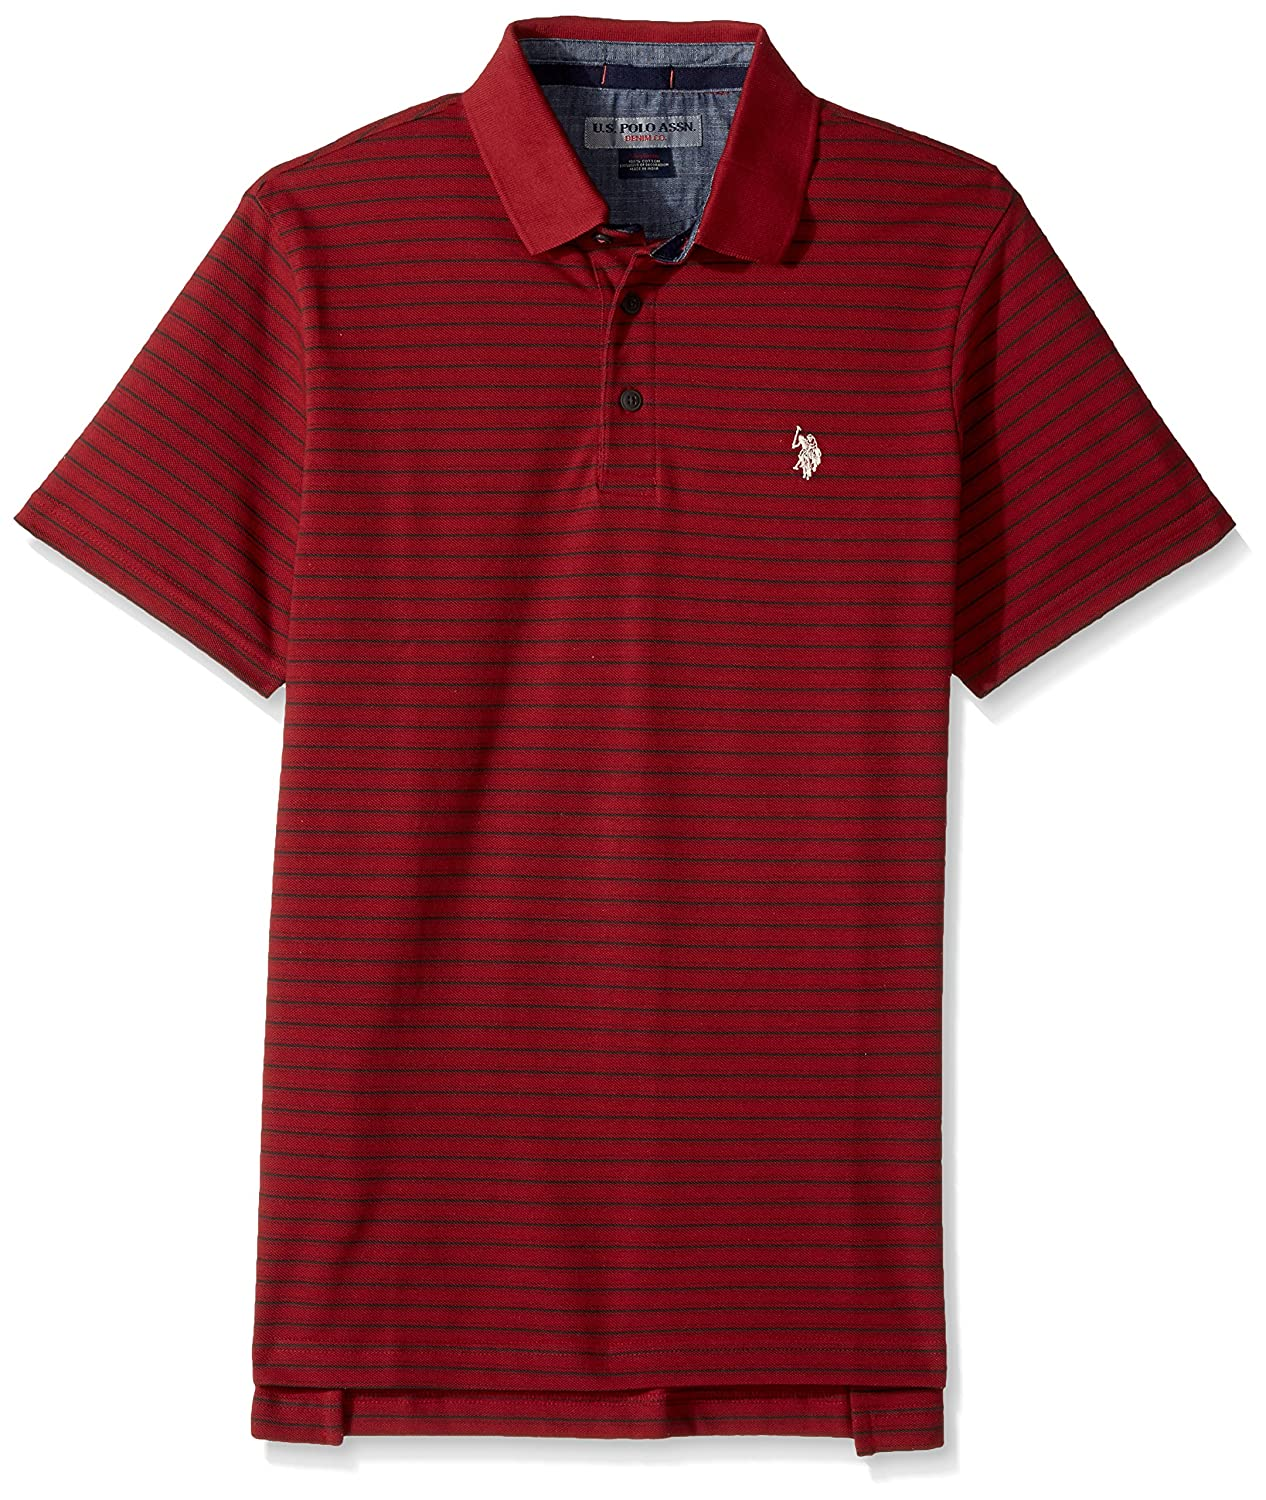 U.S. Polo Assn. Mens Standard Classic Fit Striped Short Sleeve Pique Polo Shirt